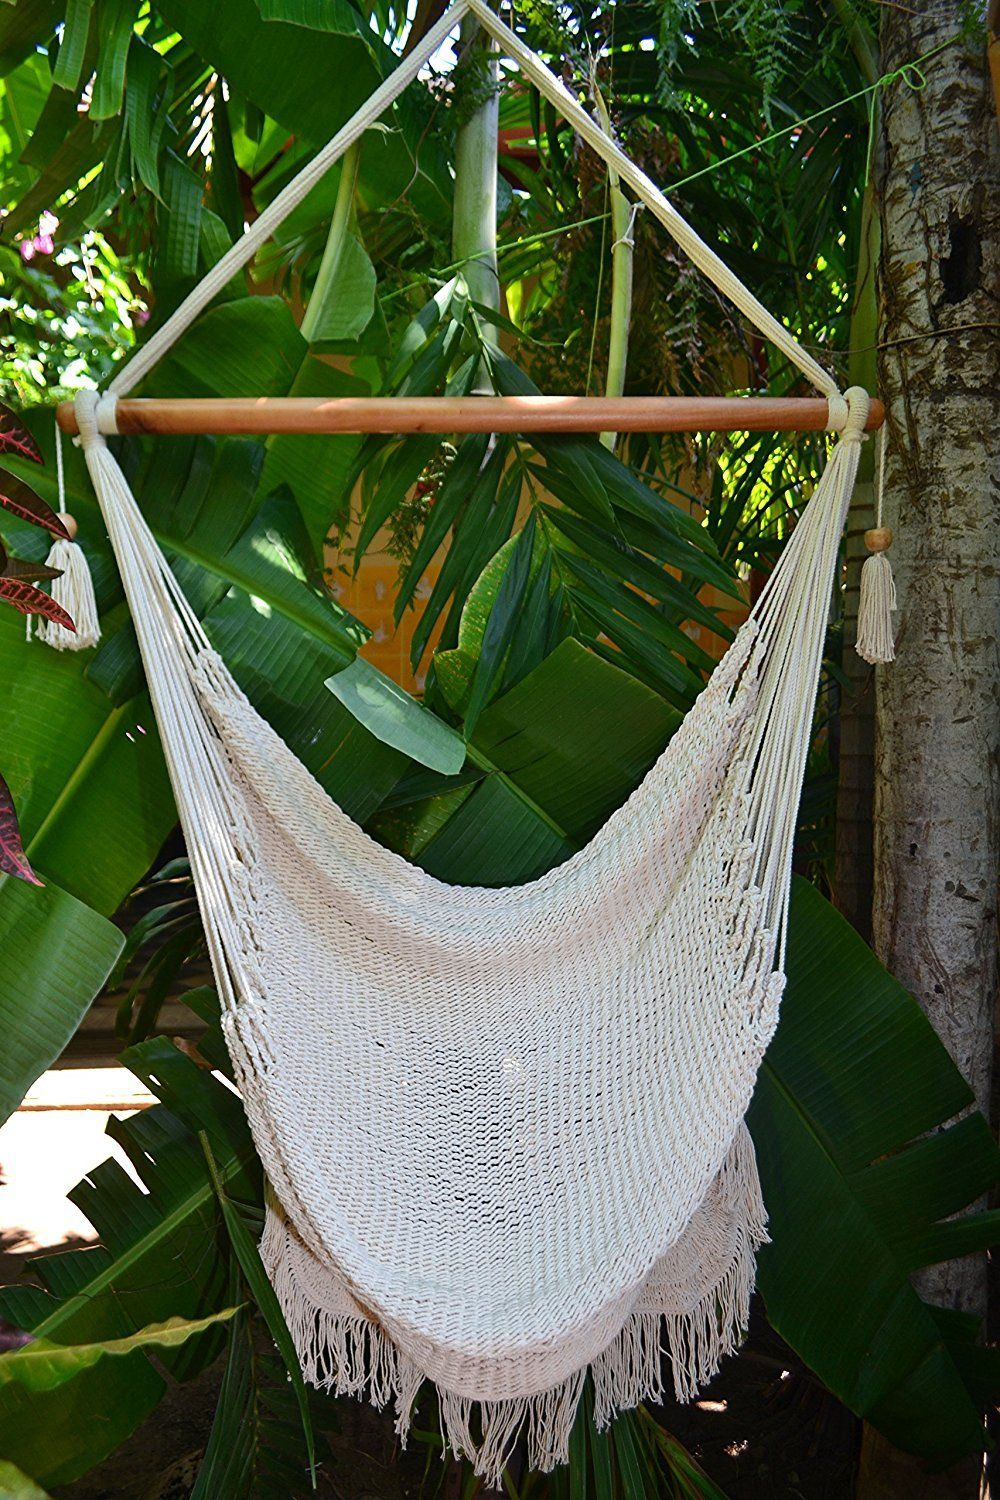 Handmade Hanging Rope Hammock Chair All Natural Indoor or Outdoor